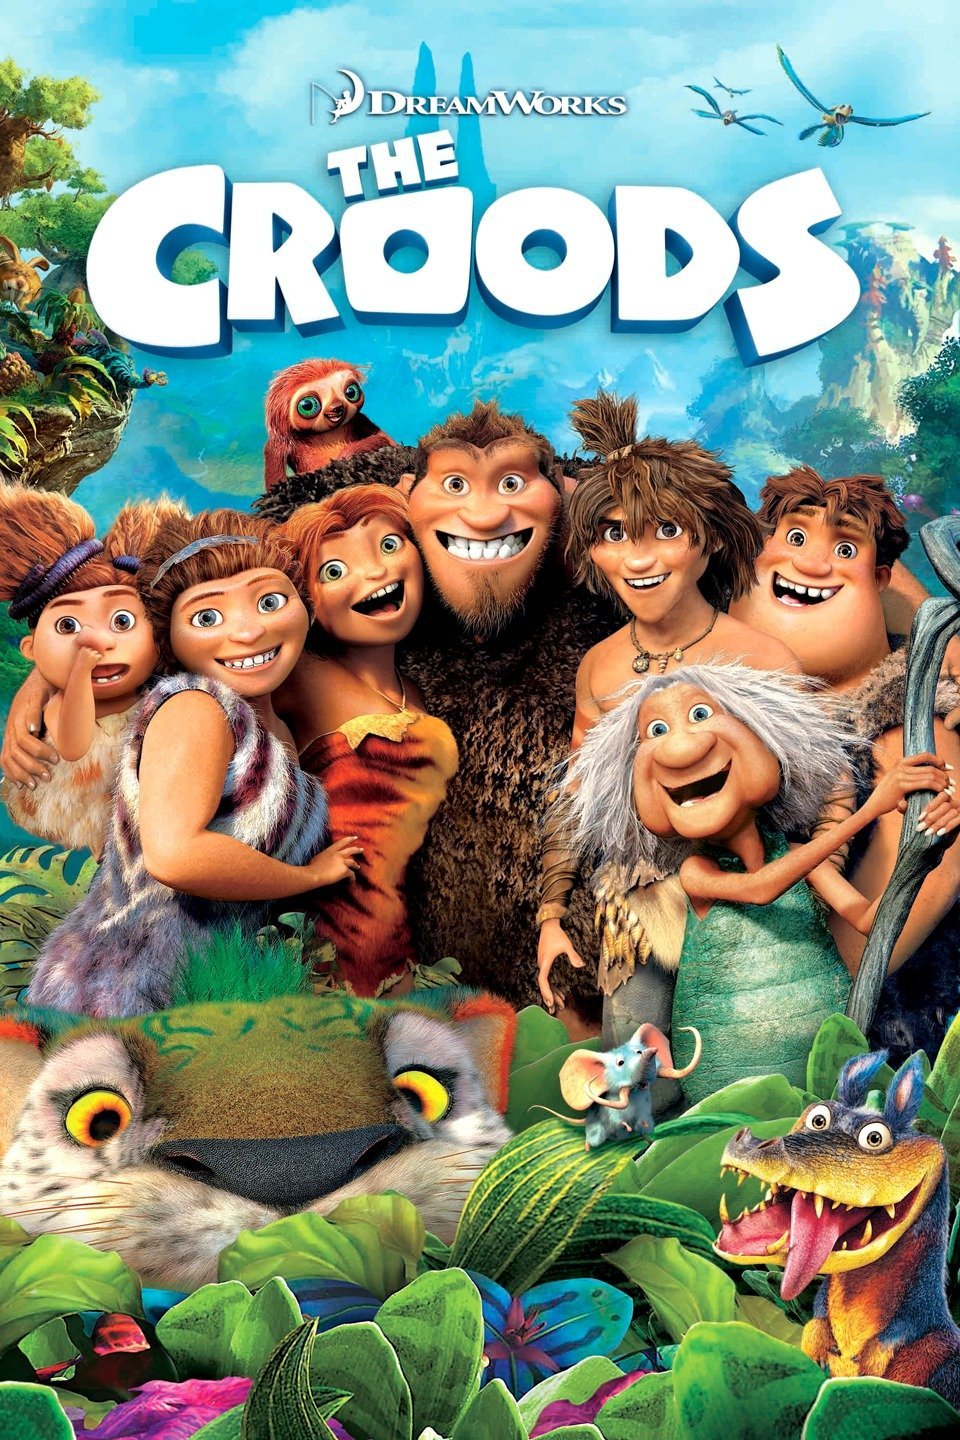 the croods 2 full movie download in hindi hd 2017